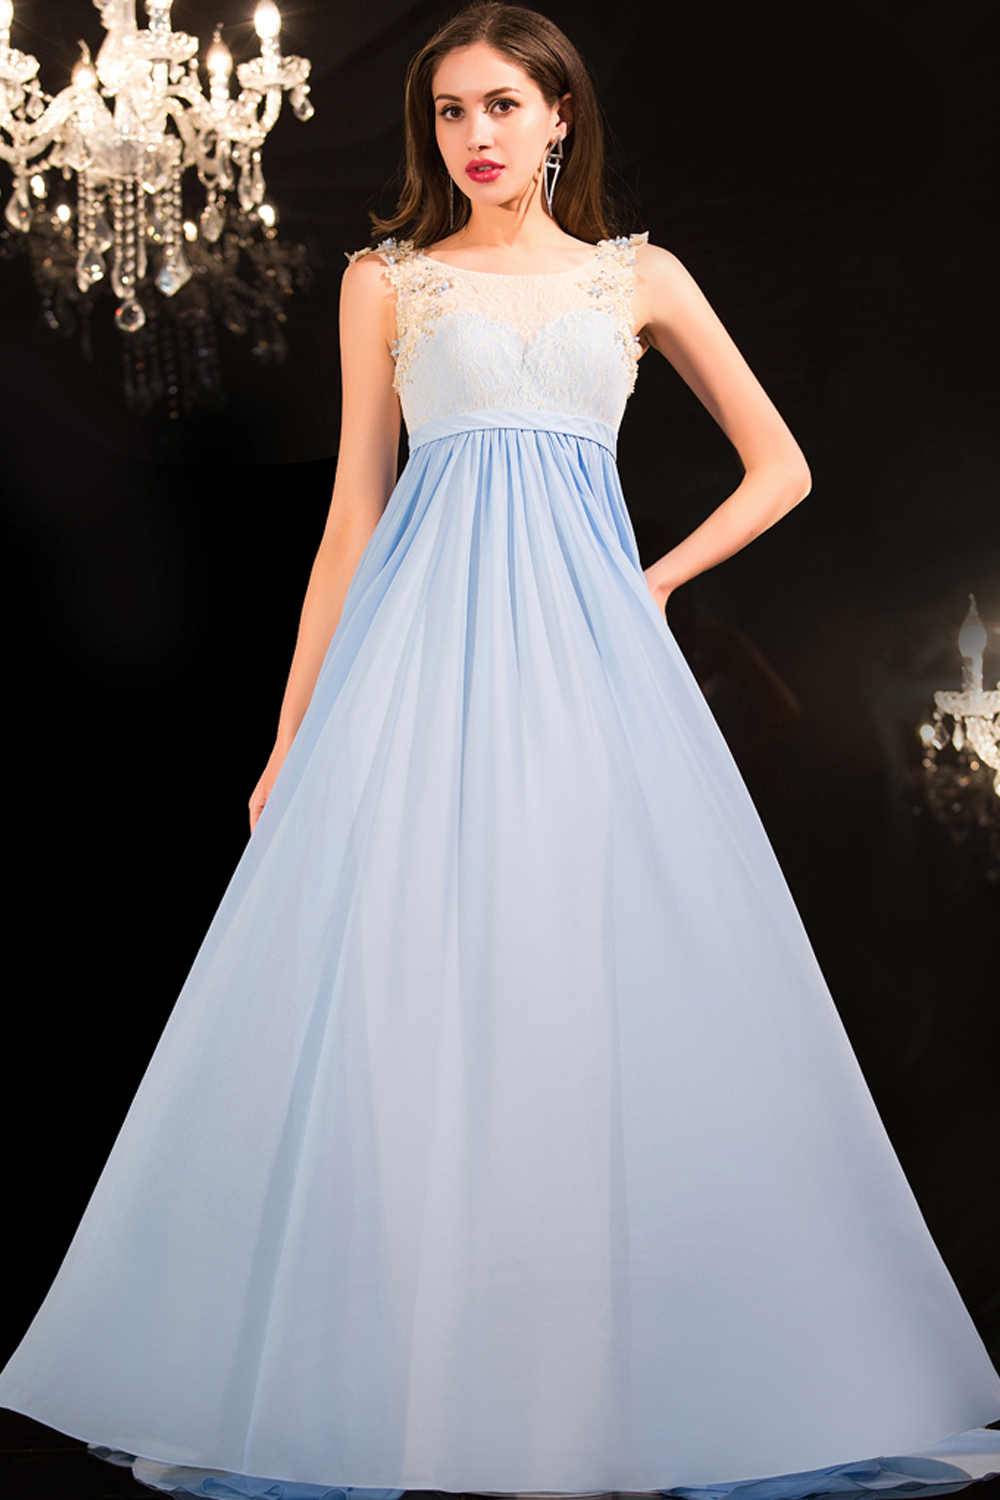 A-Line/Princess Scoop Neckline Floor Length Chiffon Prom Dress with Appliques